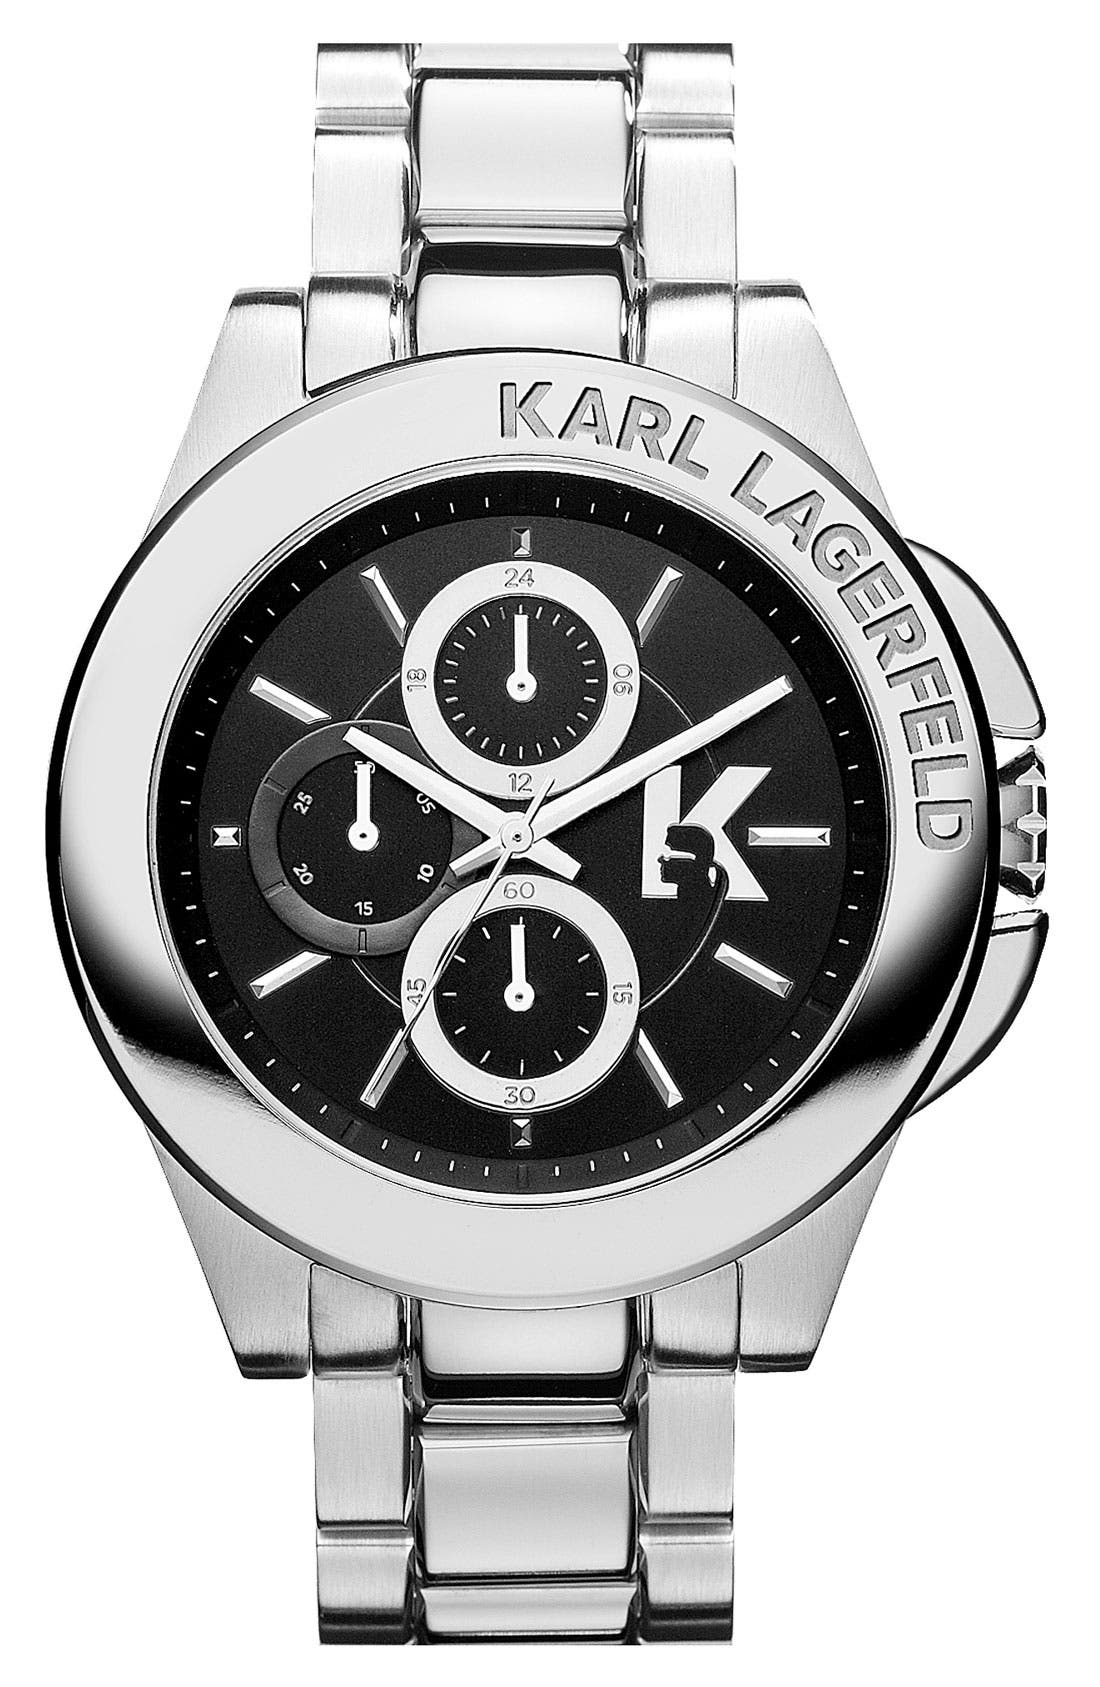 Alternate Image 1 Selected - KARL LAGERFELD 'Energy' Chronograph Bracelet Watch, 44mm